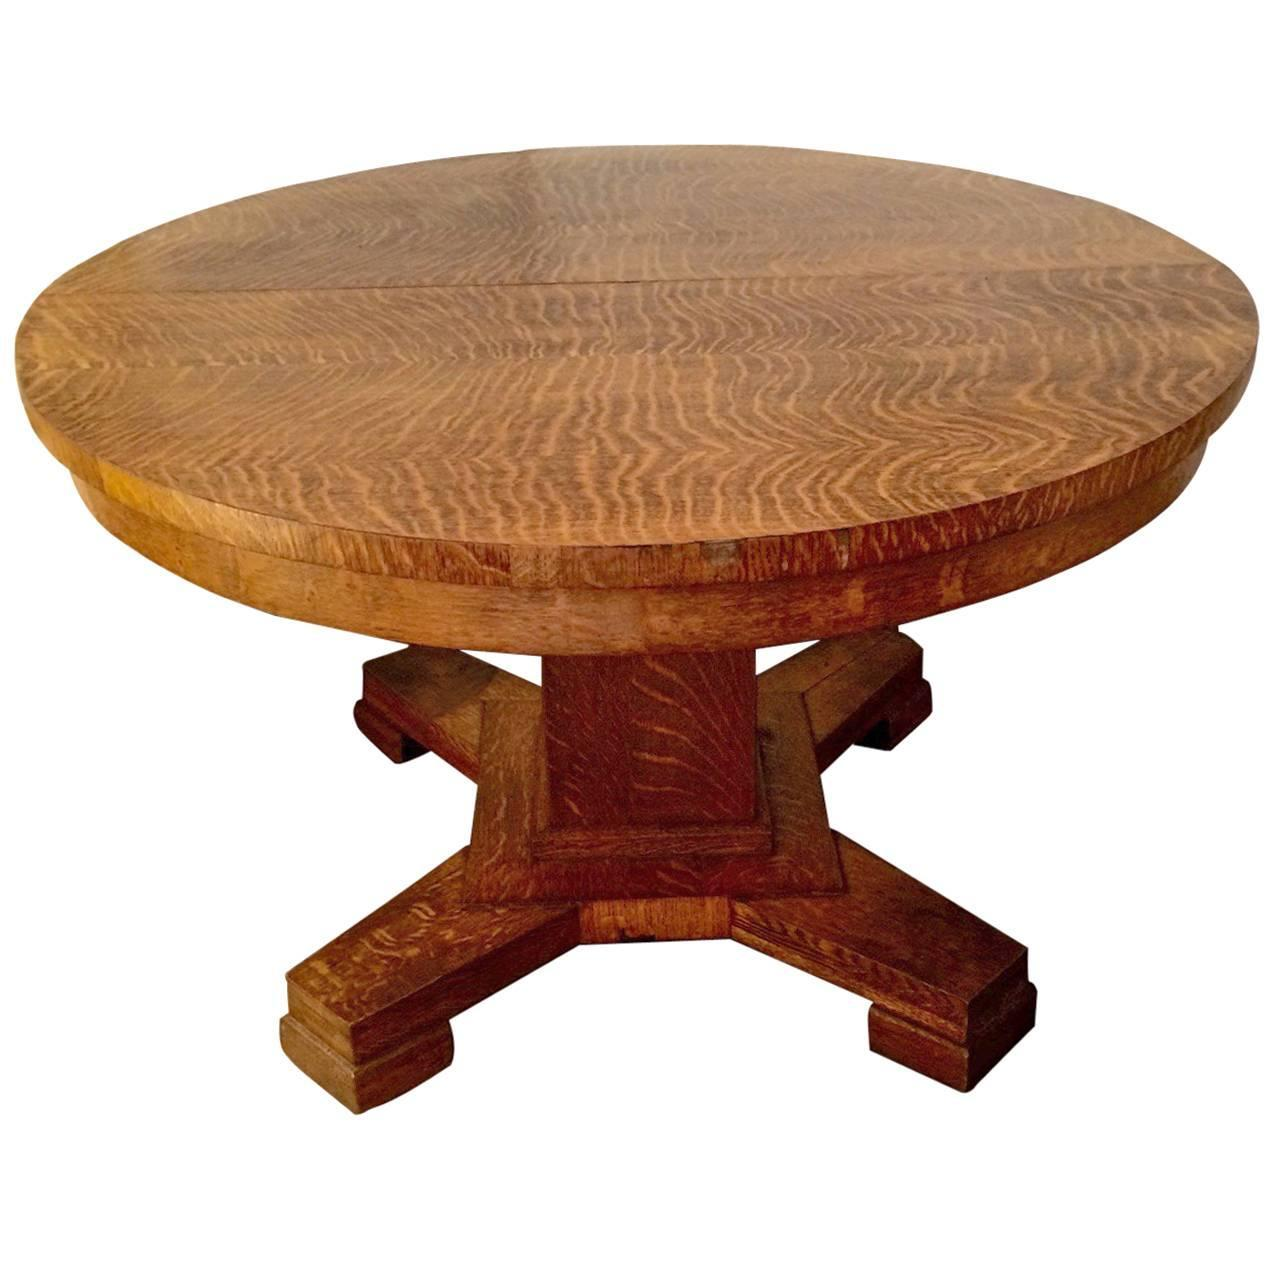 Arts and crafts style round zebra grain dining table at for Arts and crafts style table